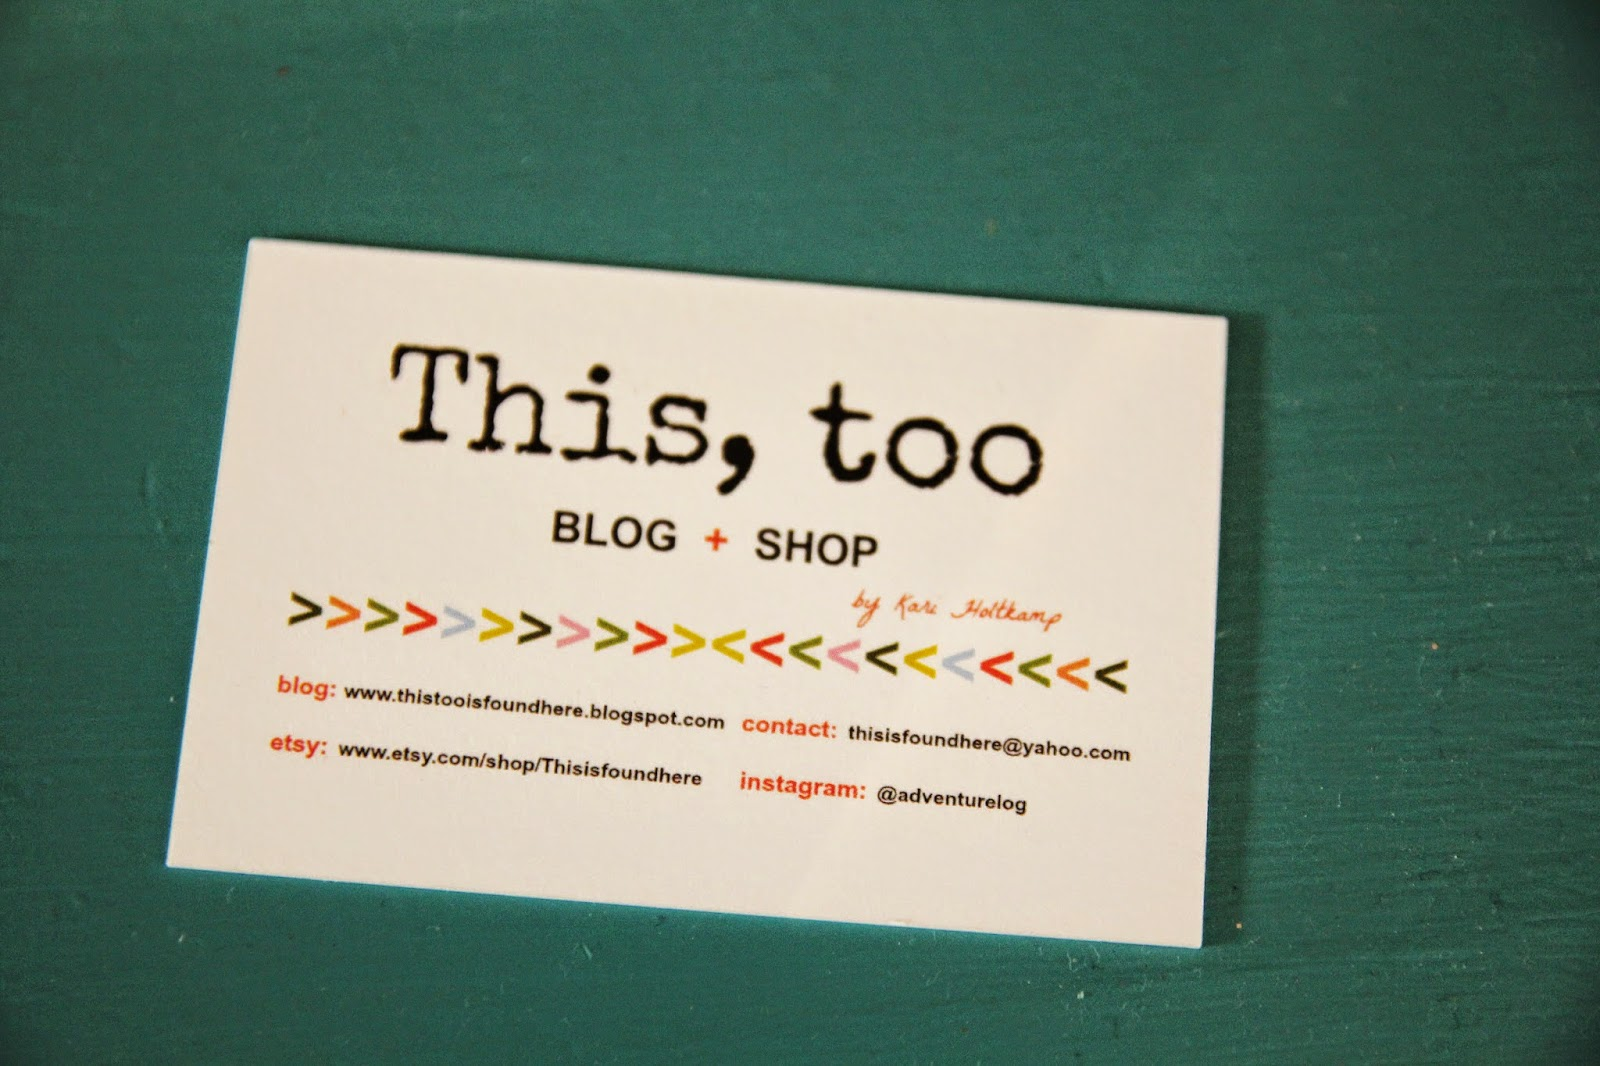 This, too: BLOGGER BUSINESS CARDS